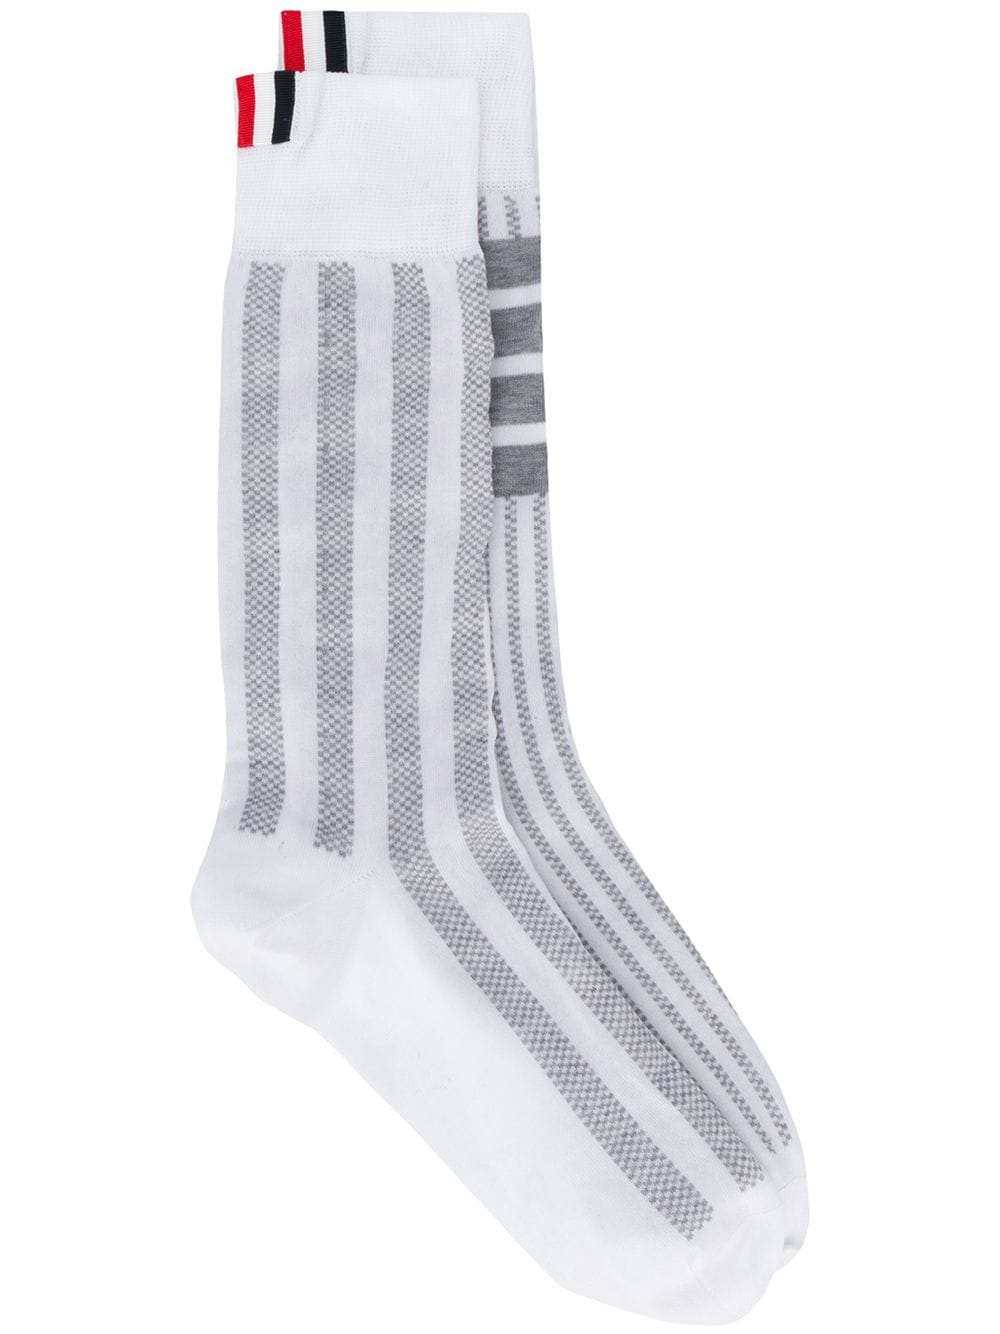 THOM BROWNE WOMEN FUN MIX SEERSUCKER MID CALF SOCKS IN LIGHTWEIGHT COTTON